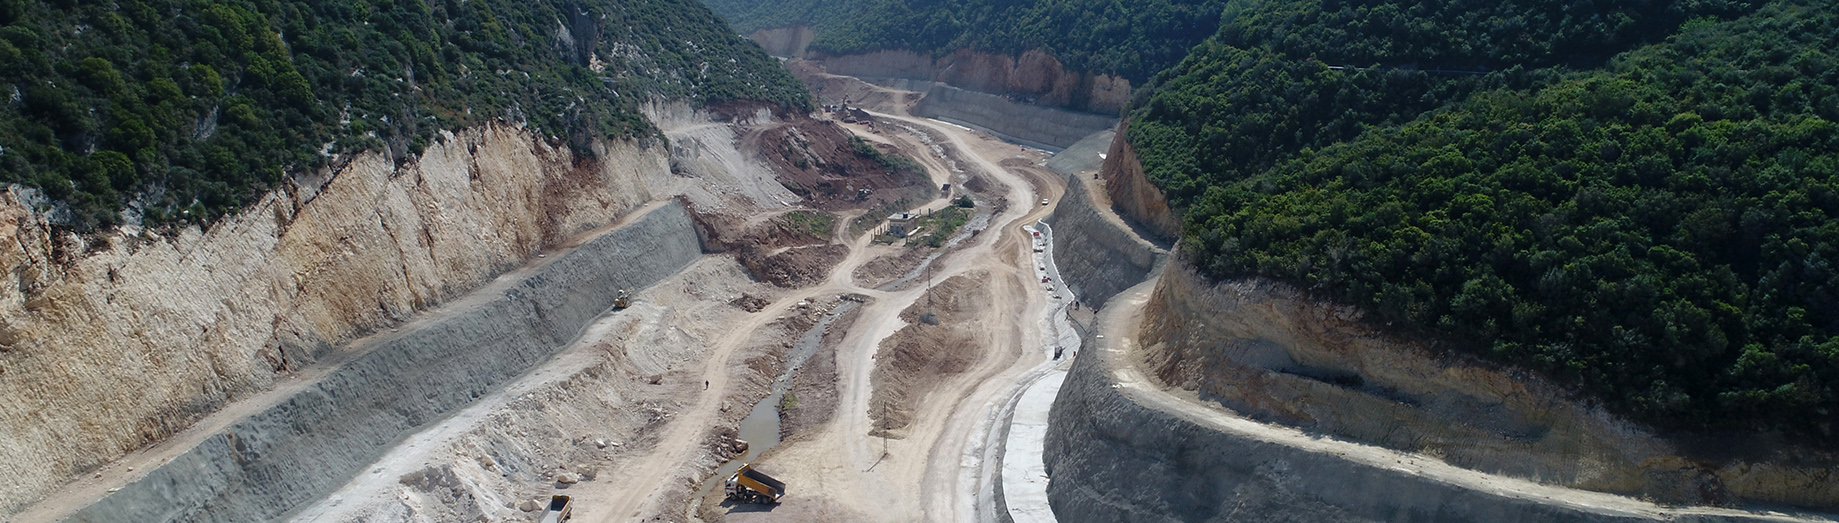 Construction of the Mseilha Dam and Lake